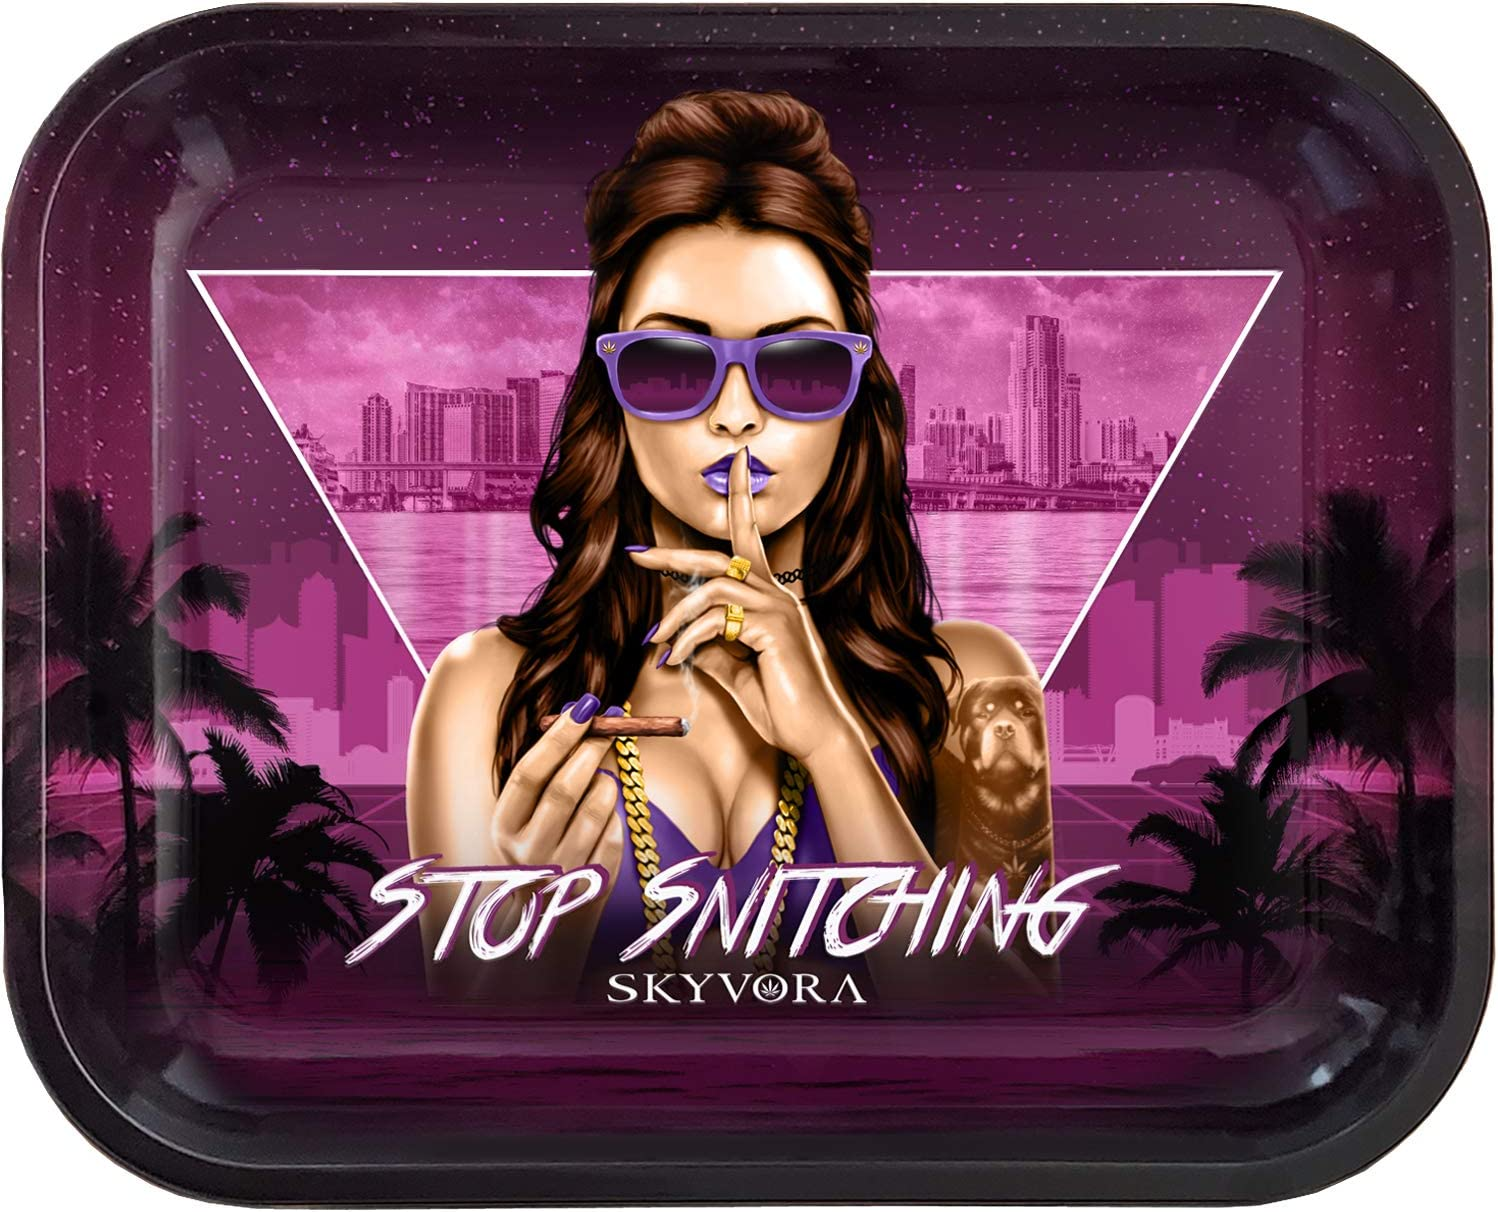 Skyvora Metal Miami Mall Rolling Tray - Stop Large x Daily bargain sale Design 14 Snitching